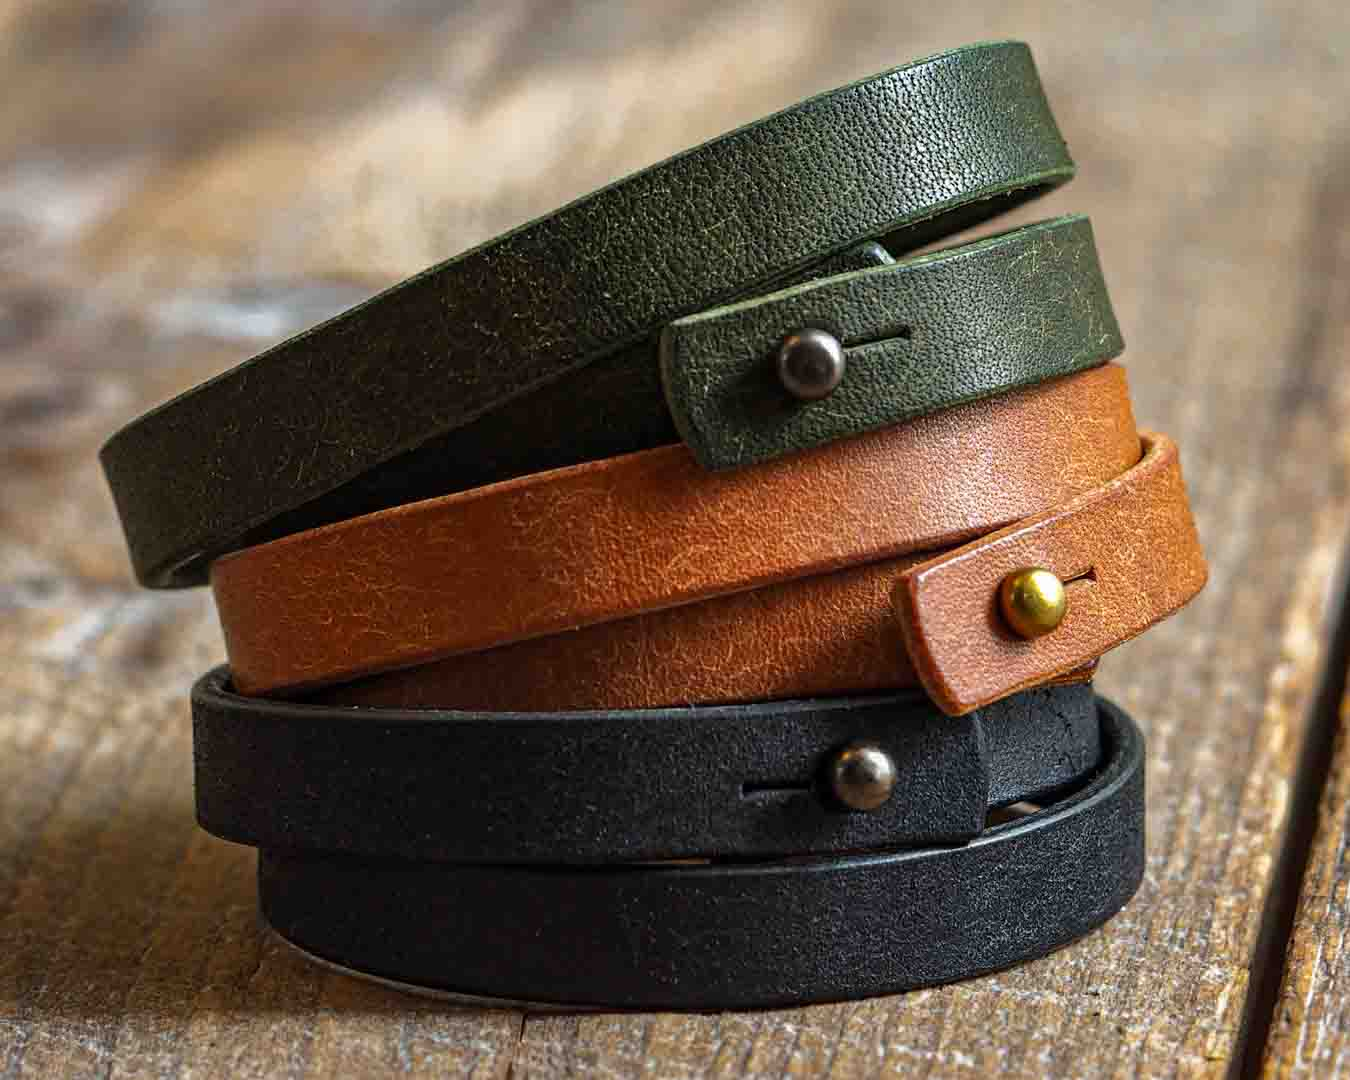 This product is Luava leather double wrist band badalassi carlo pueblo cognac olive black with a small article of how I crafted this product including tools, stages of the process and materials I used. Handmade in Finland by Luava